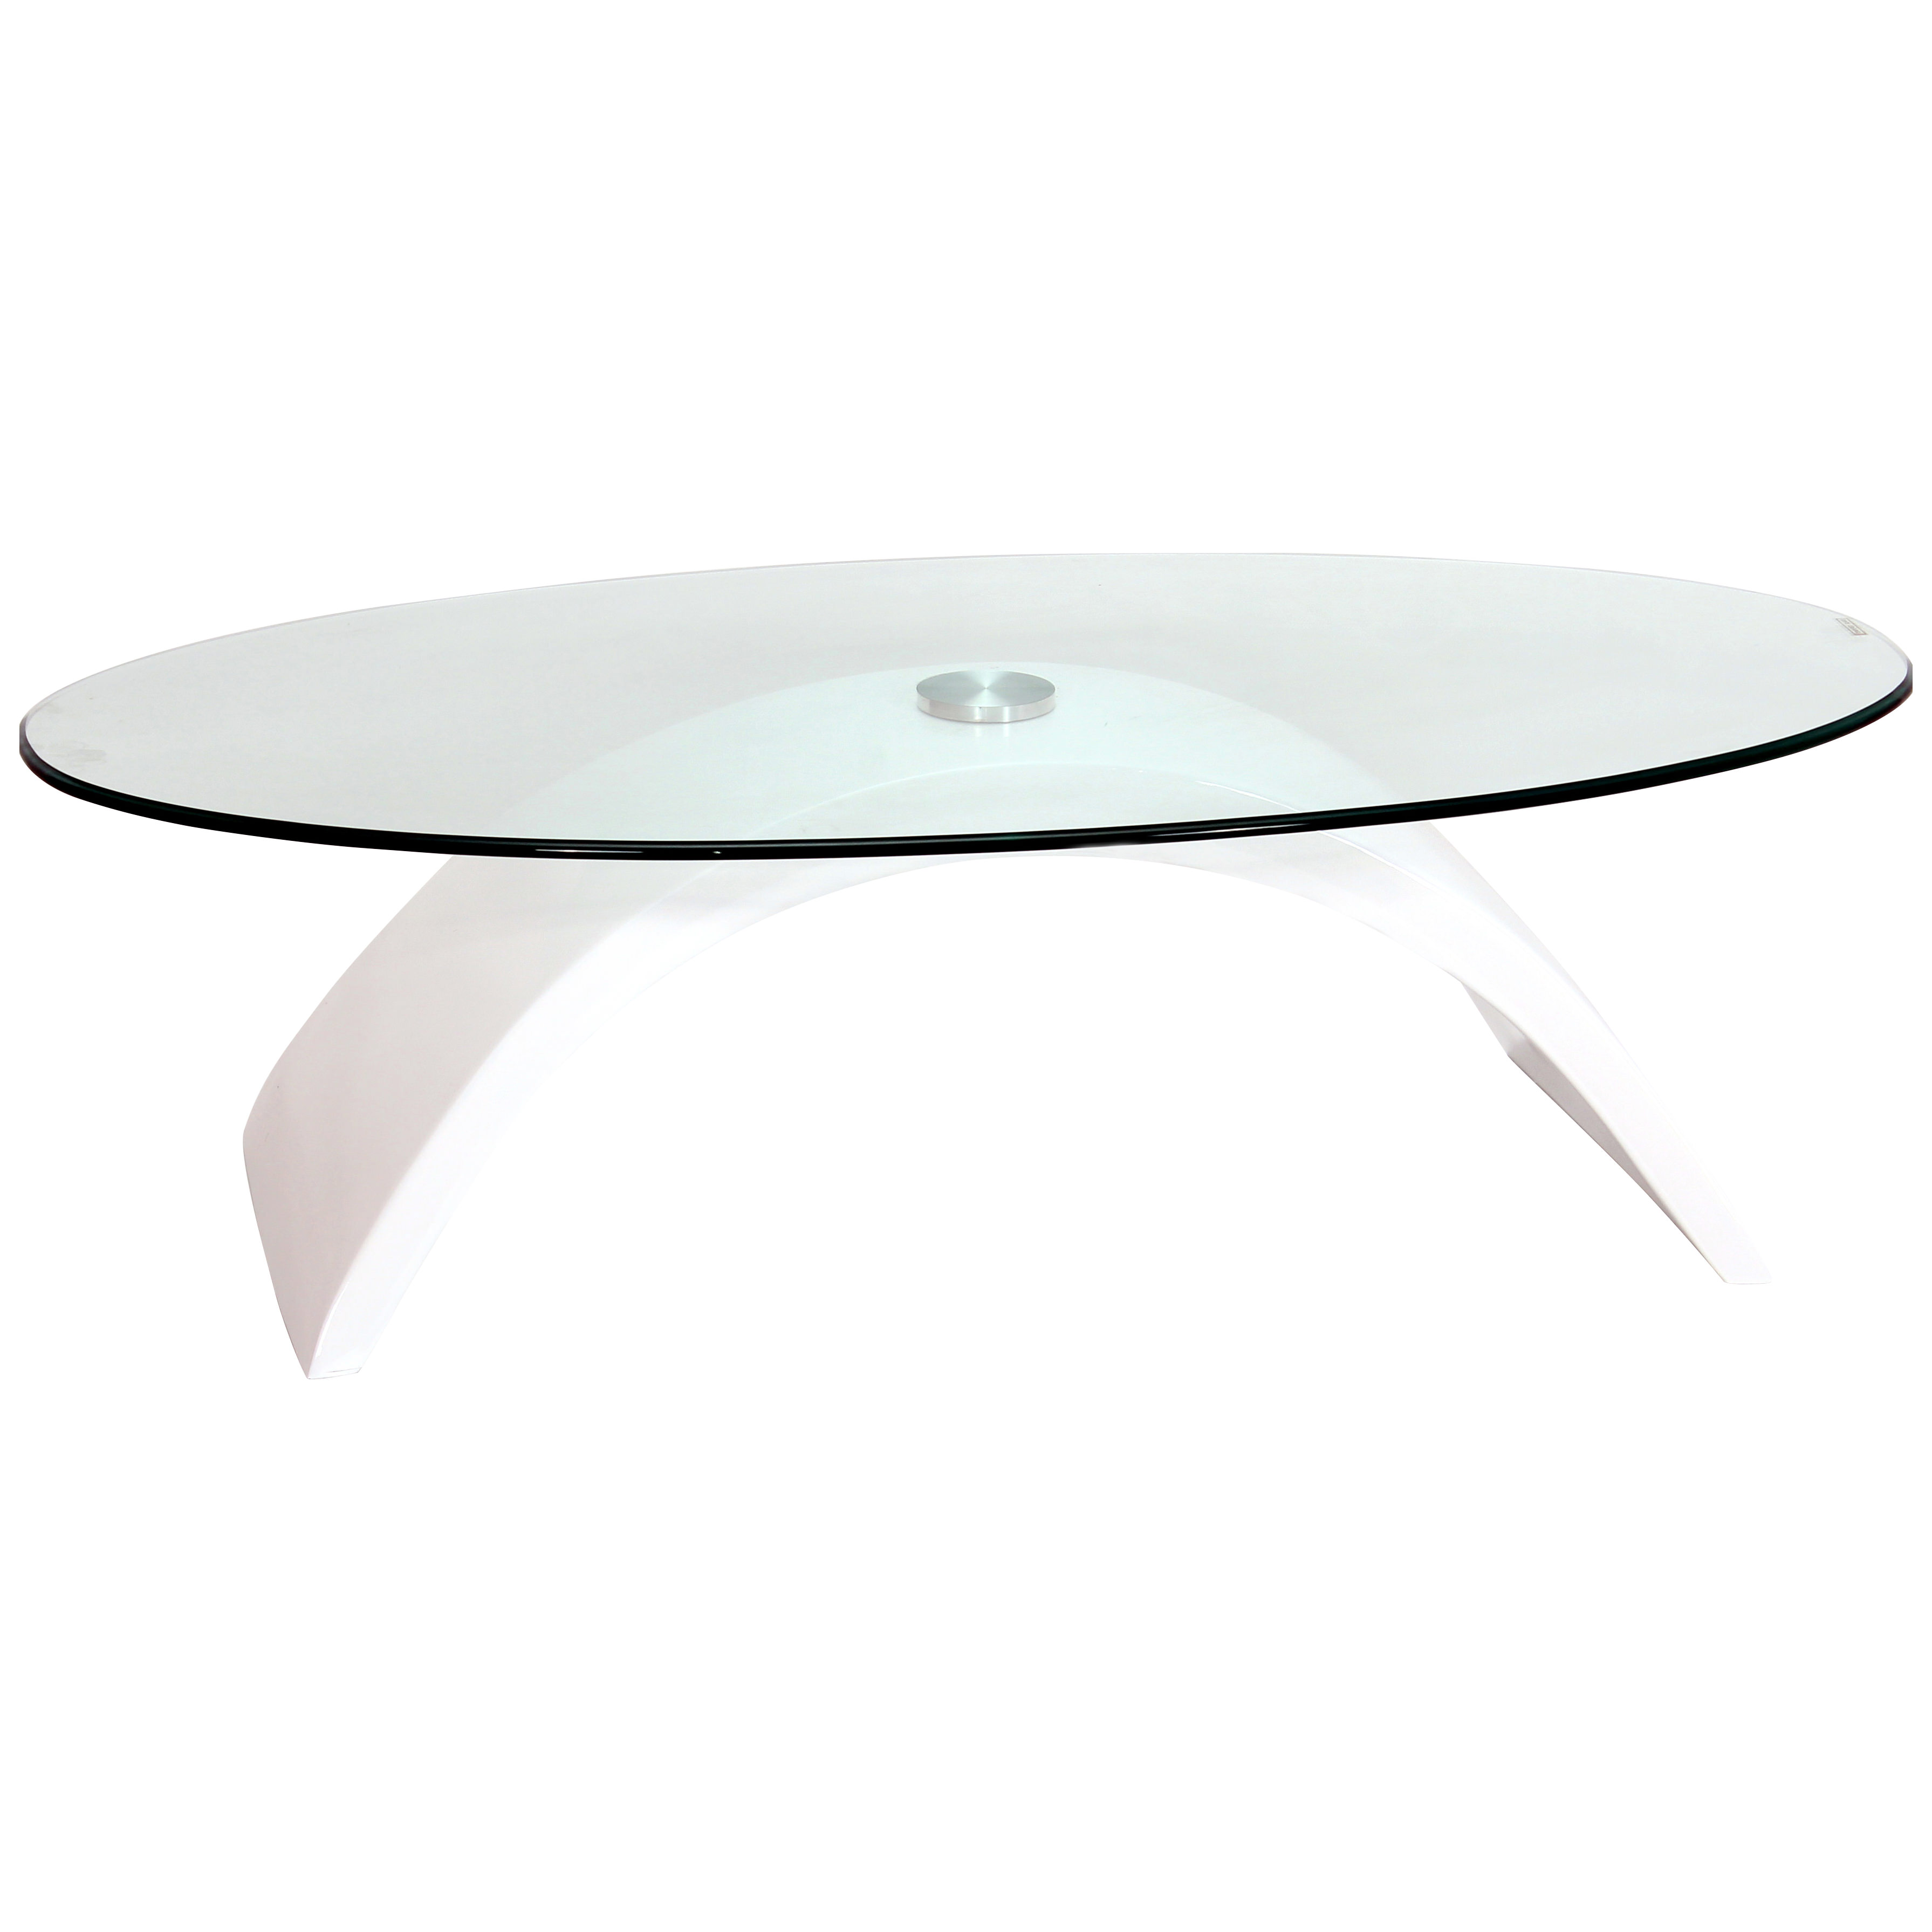 High Gloss Fibre Glass Clear Oval Coffee Table Black Red White Ebay